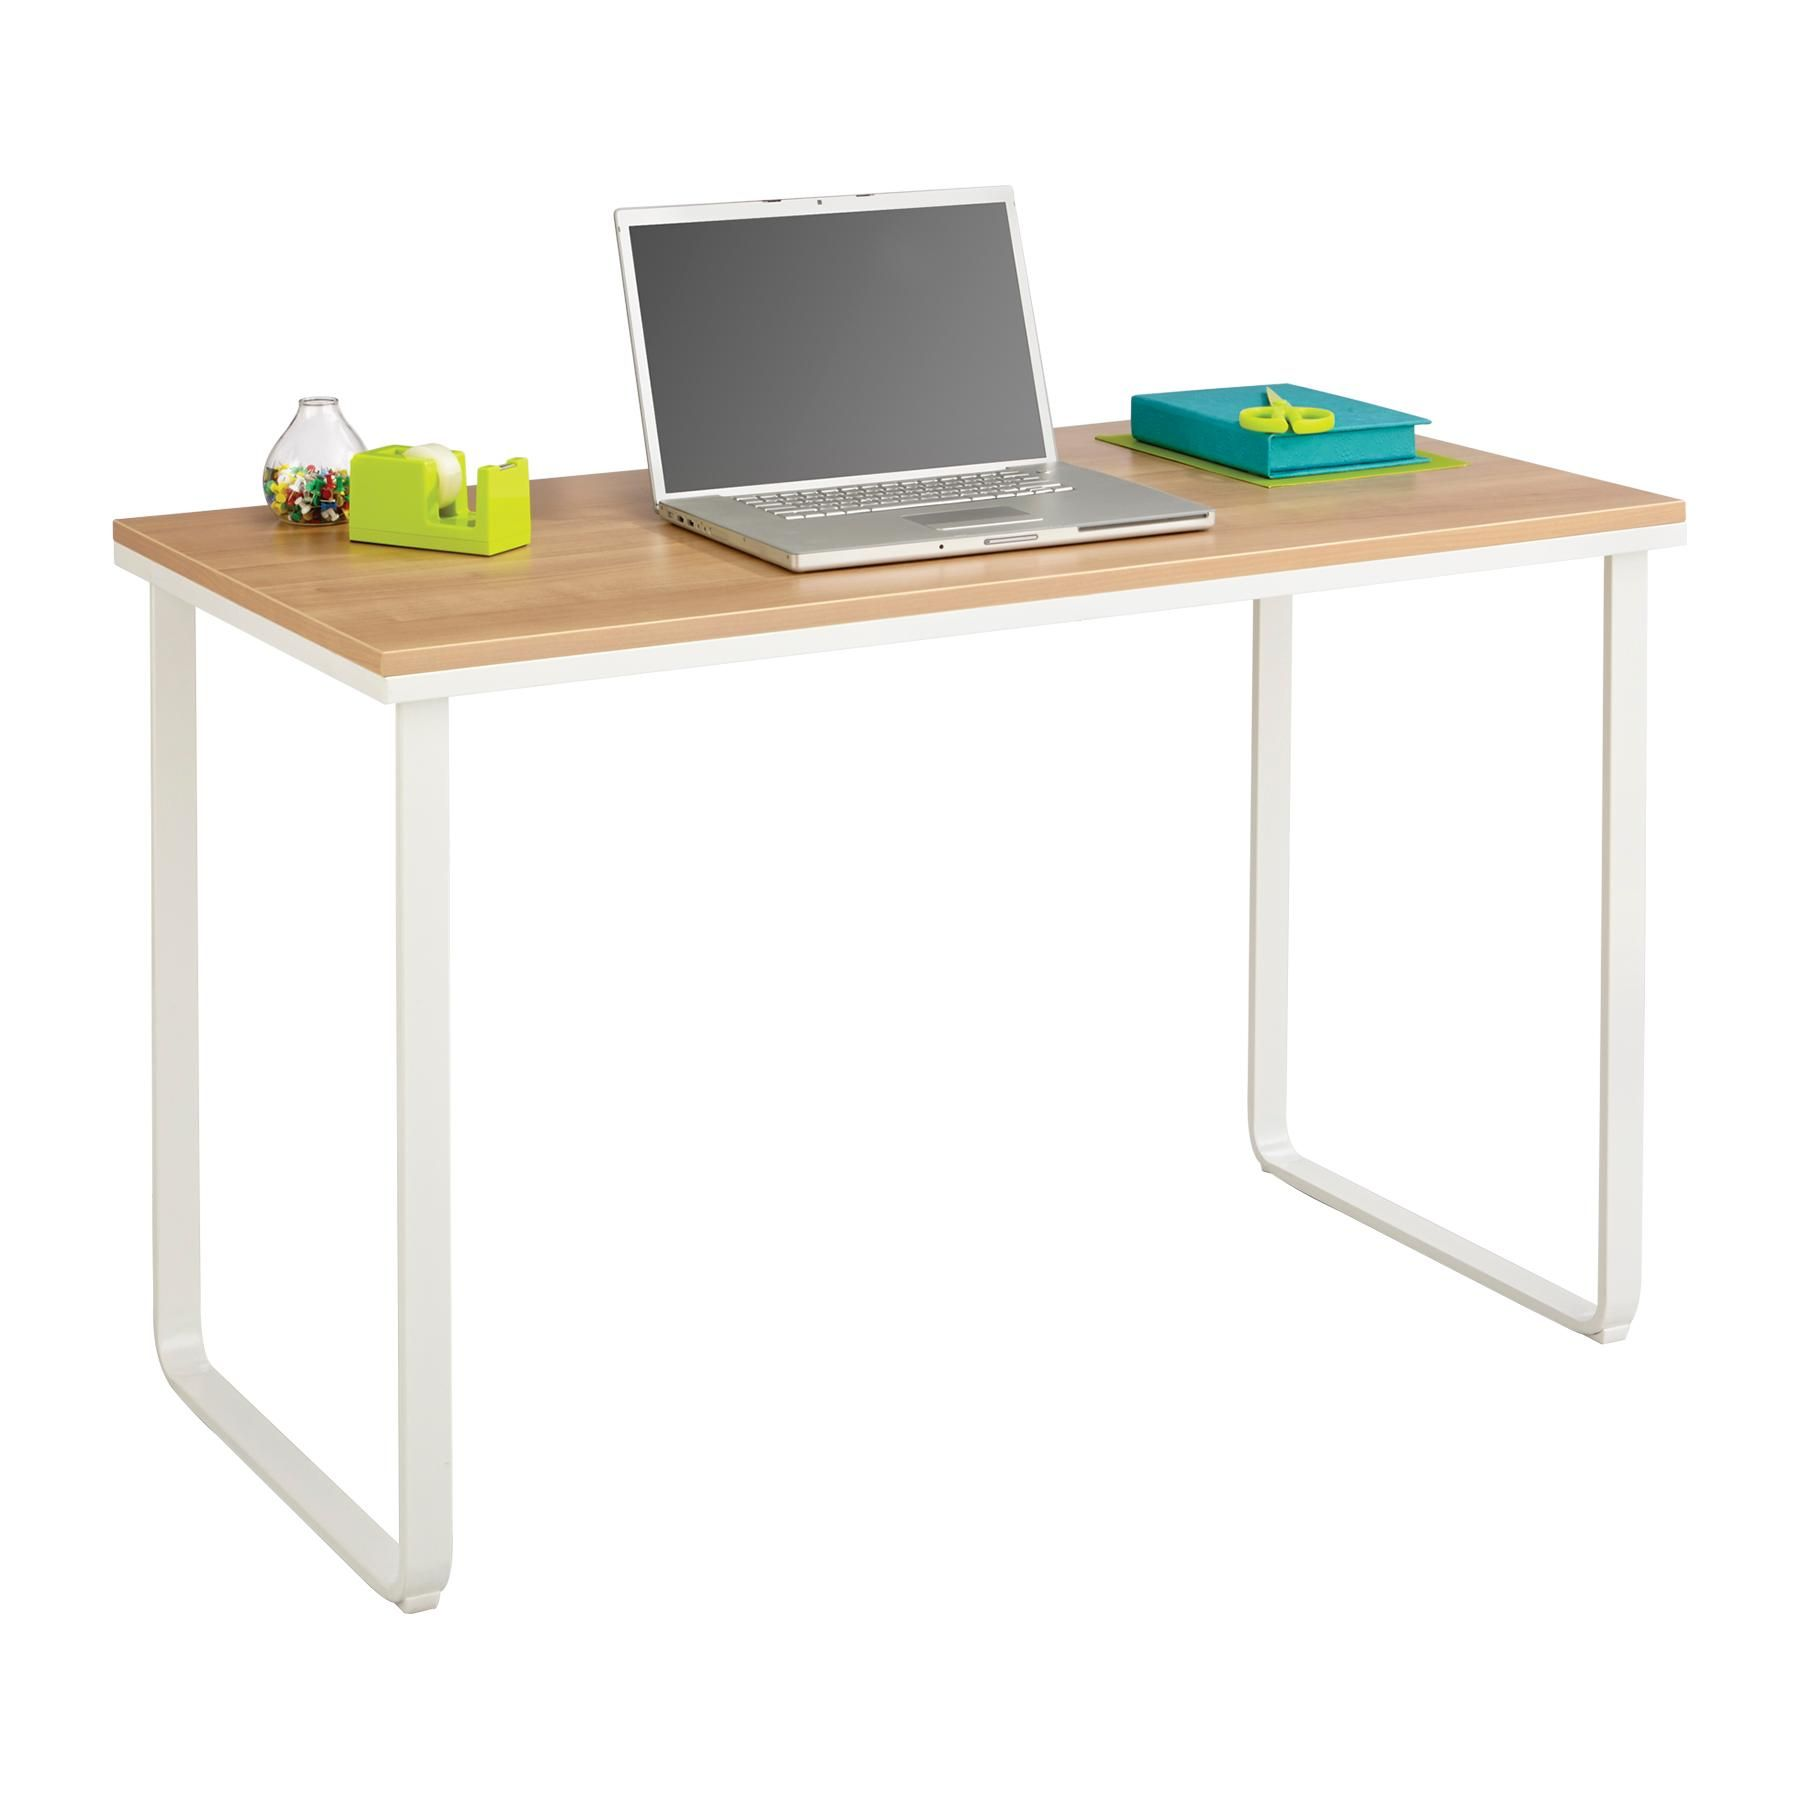 Desk table table desk office desk home desk wood desk